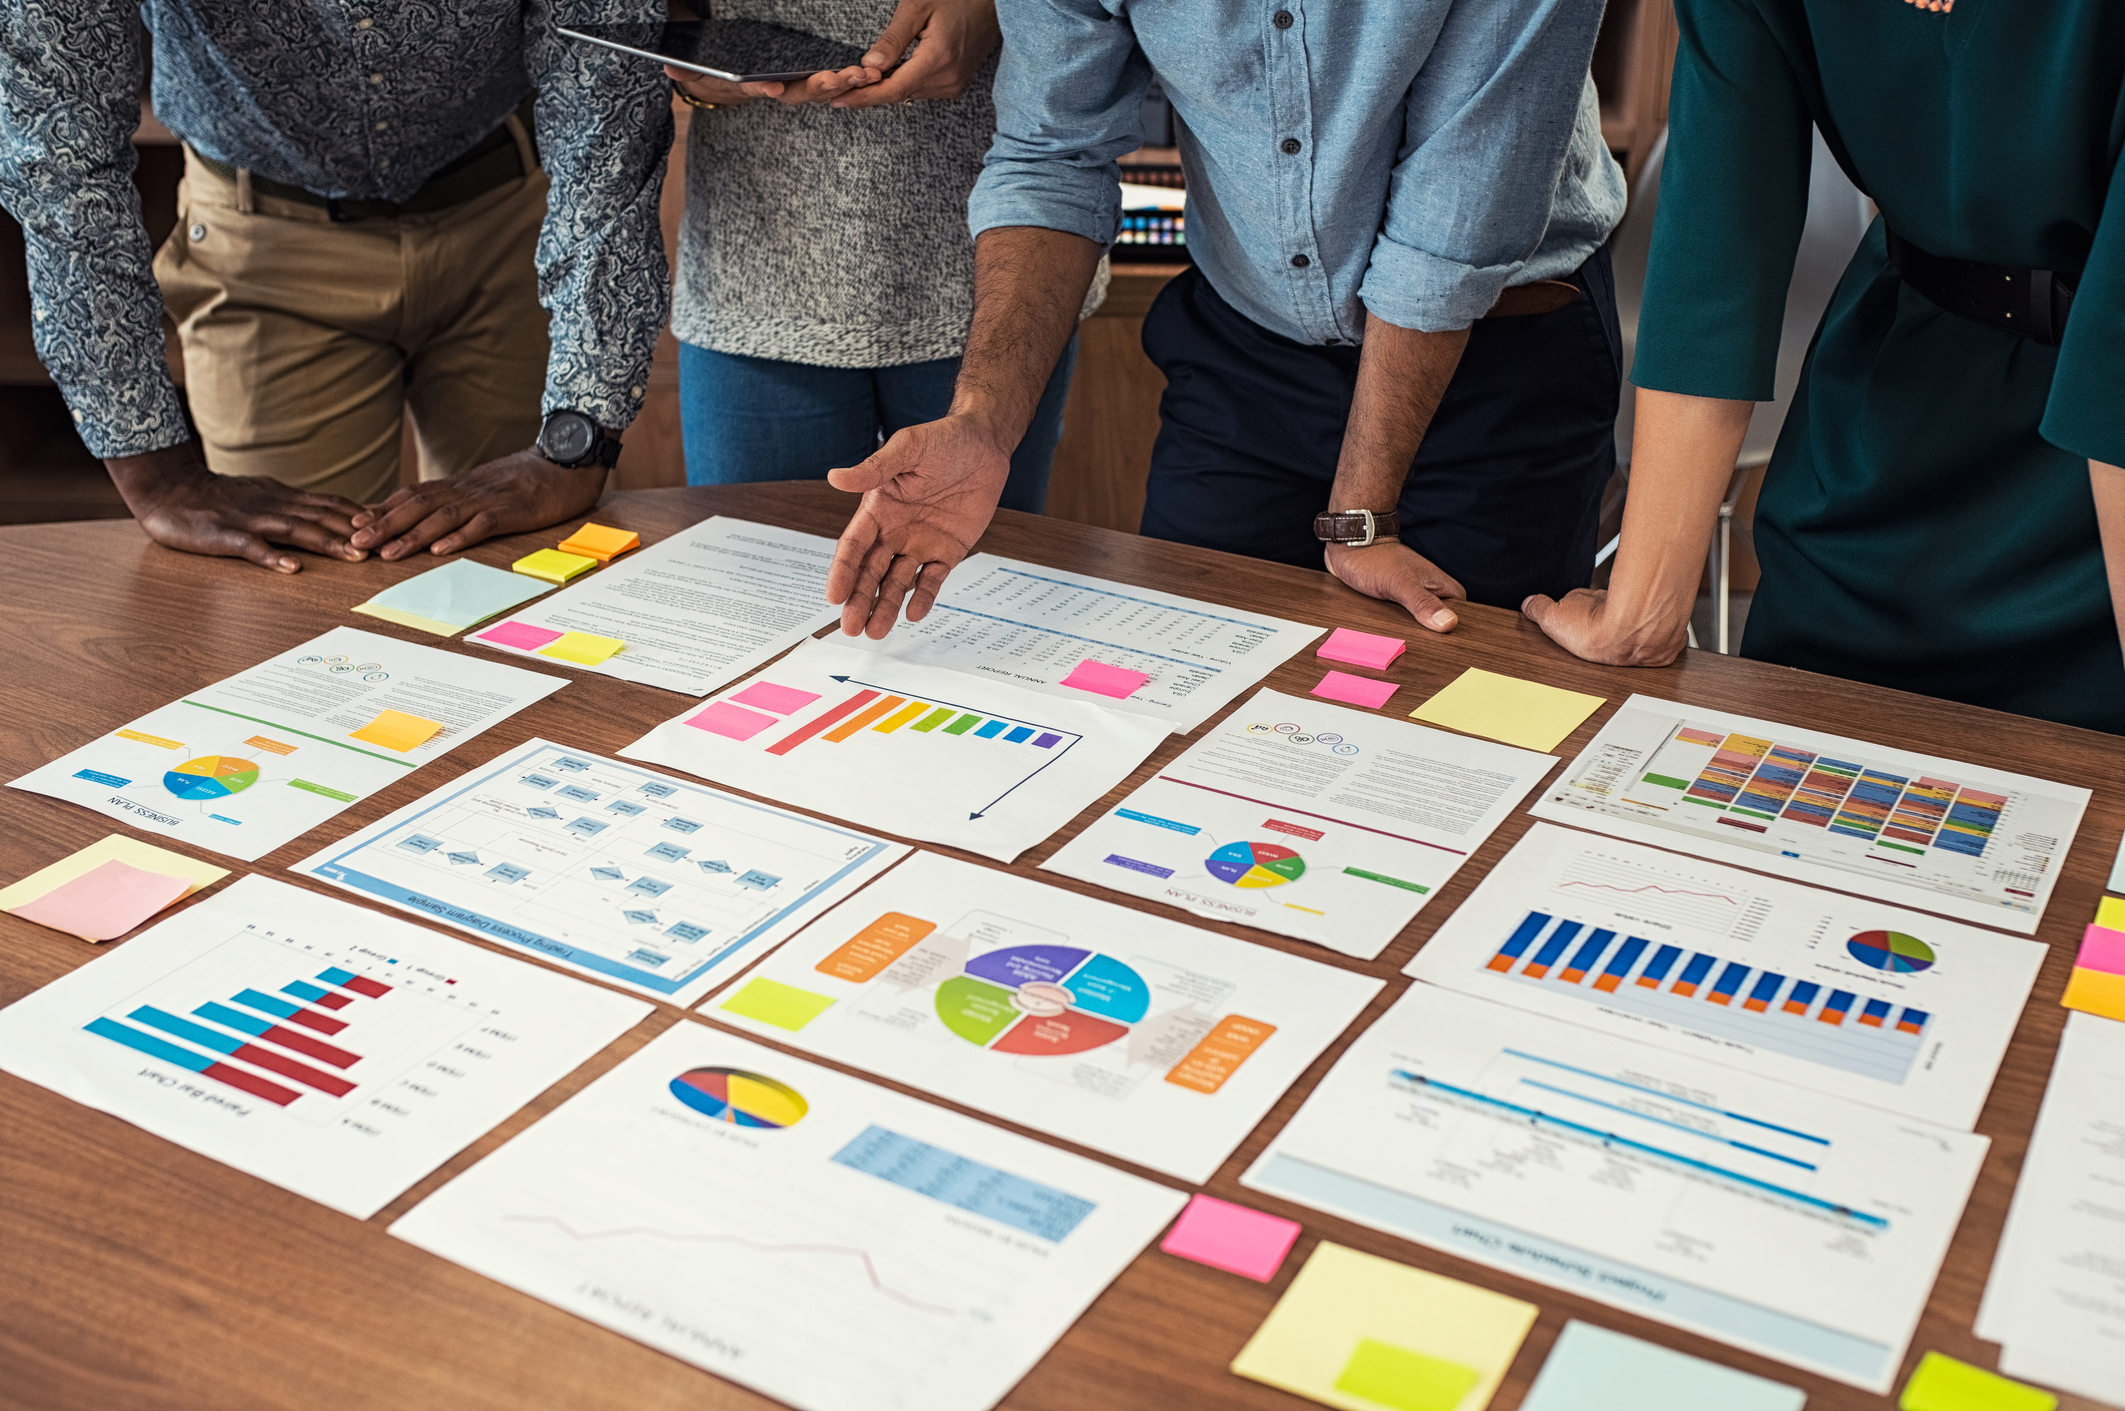 2021 B2B Marketing Trends That Will Grow Your Business